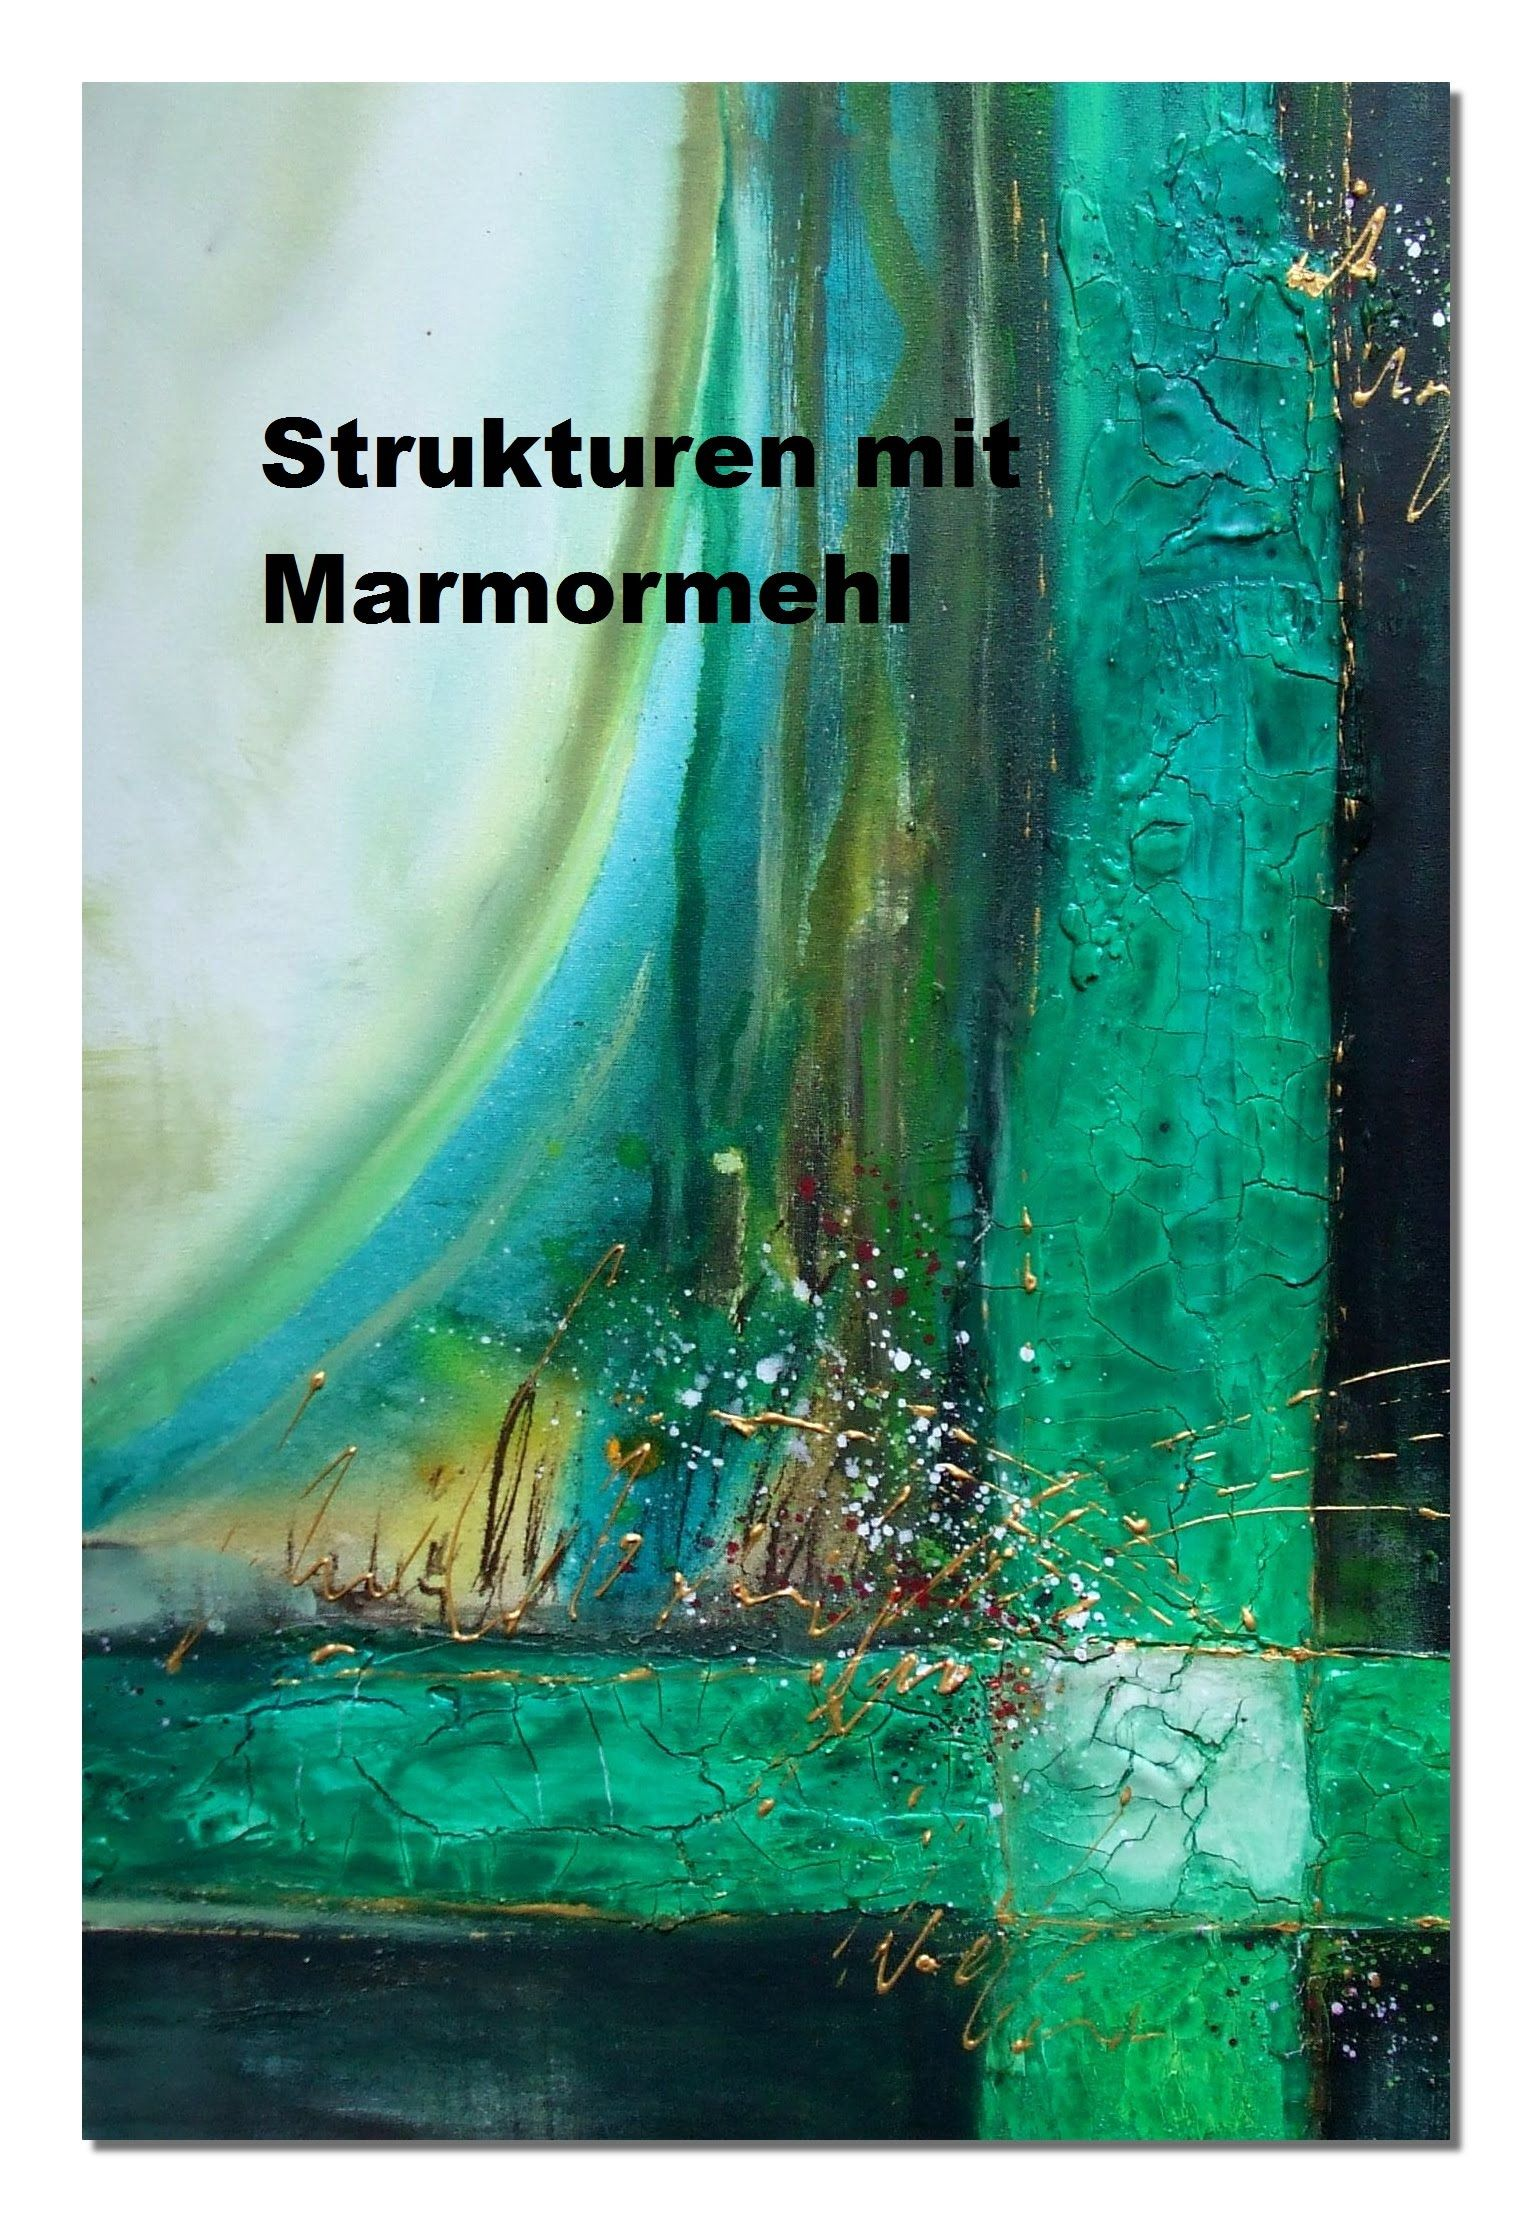 Abstrakte Bilder Malen Lernen Abstract Painting Acrylmalerei Spachtelmasse Marmormehl